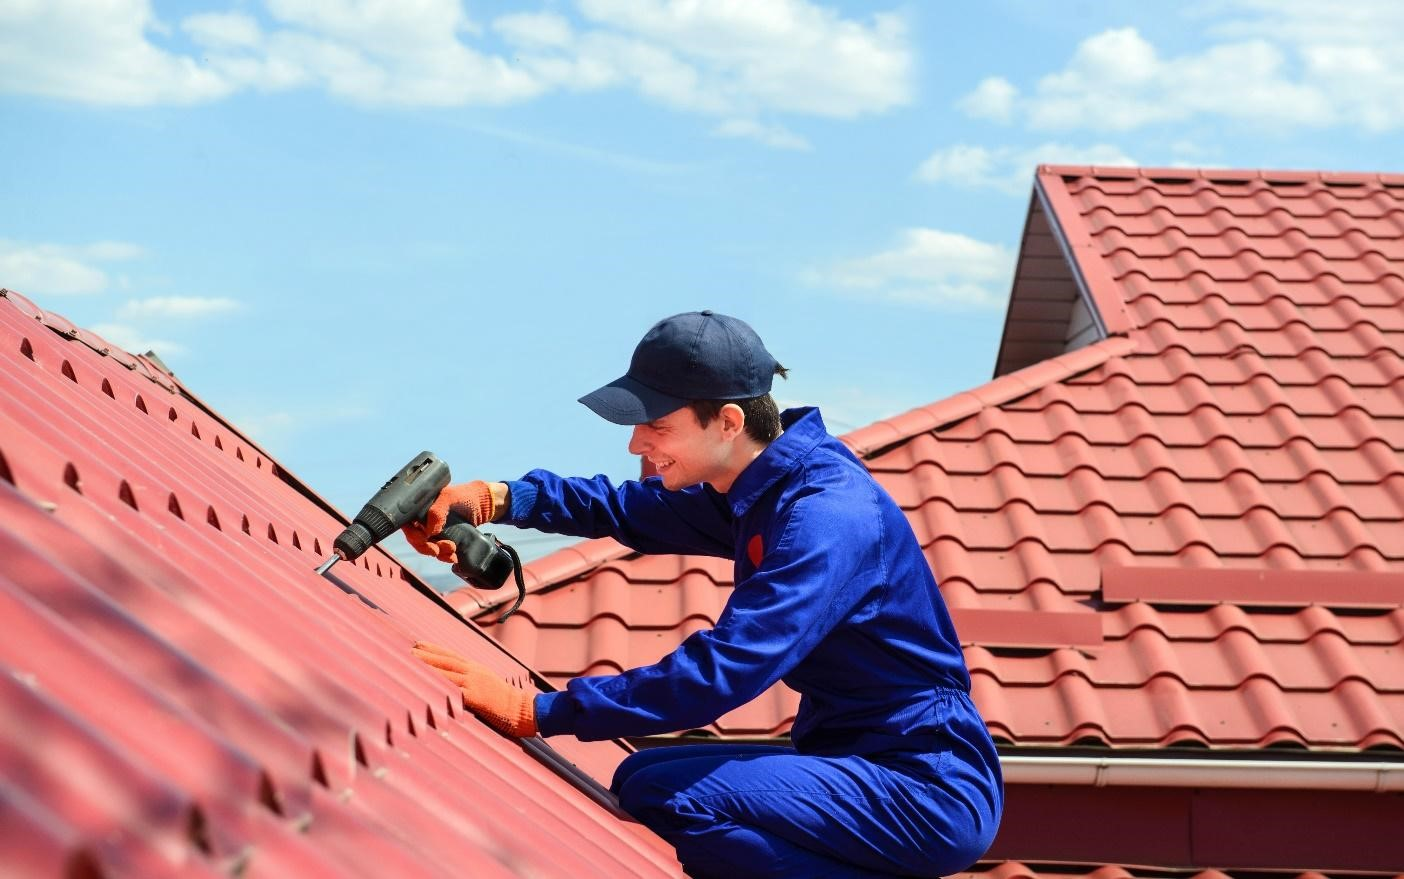 Roofing Services in North Aurora